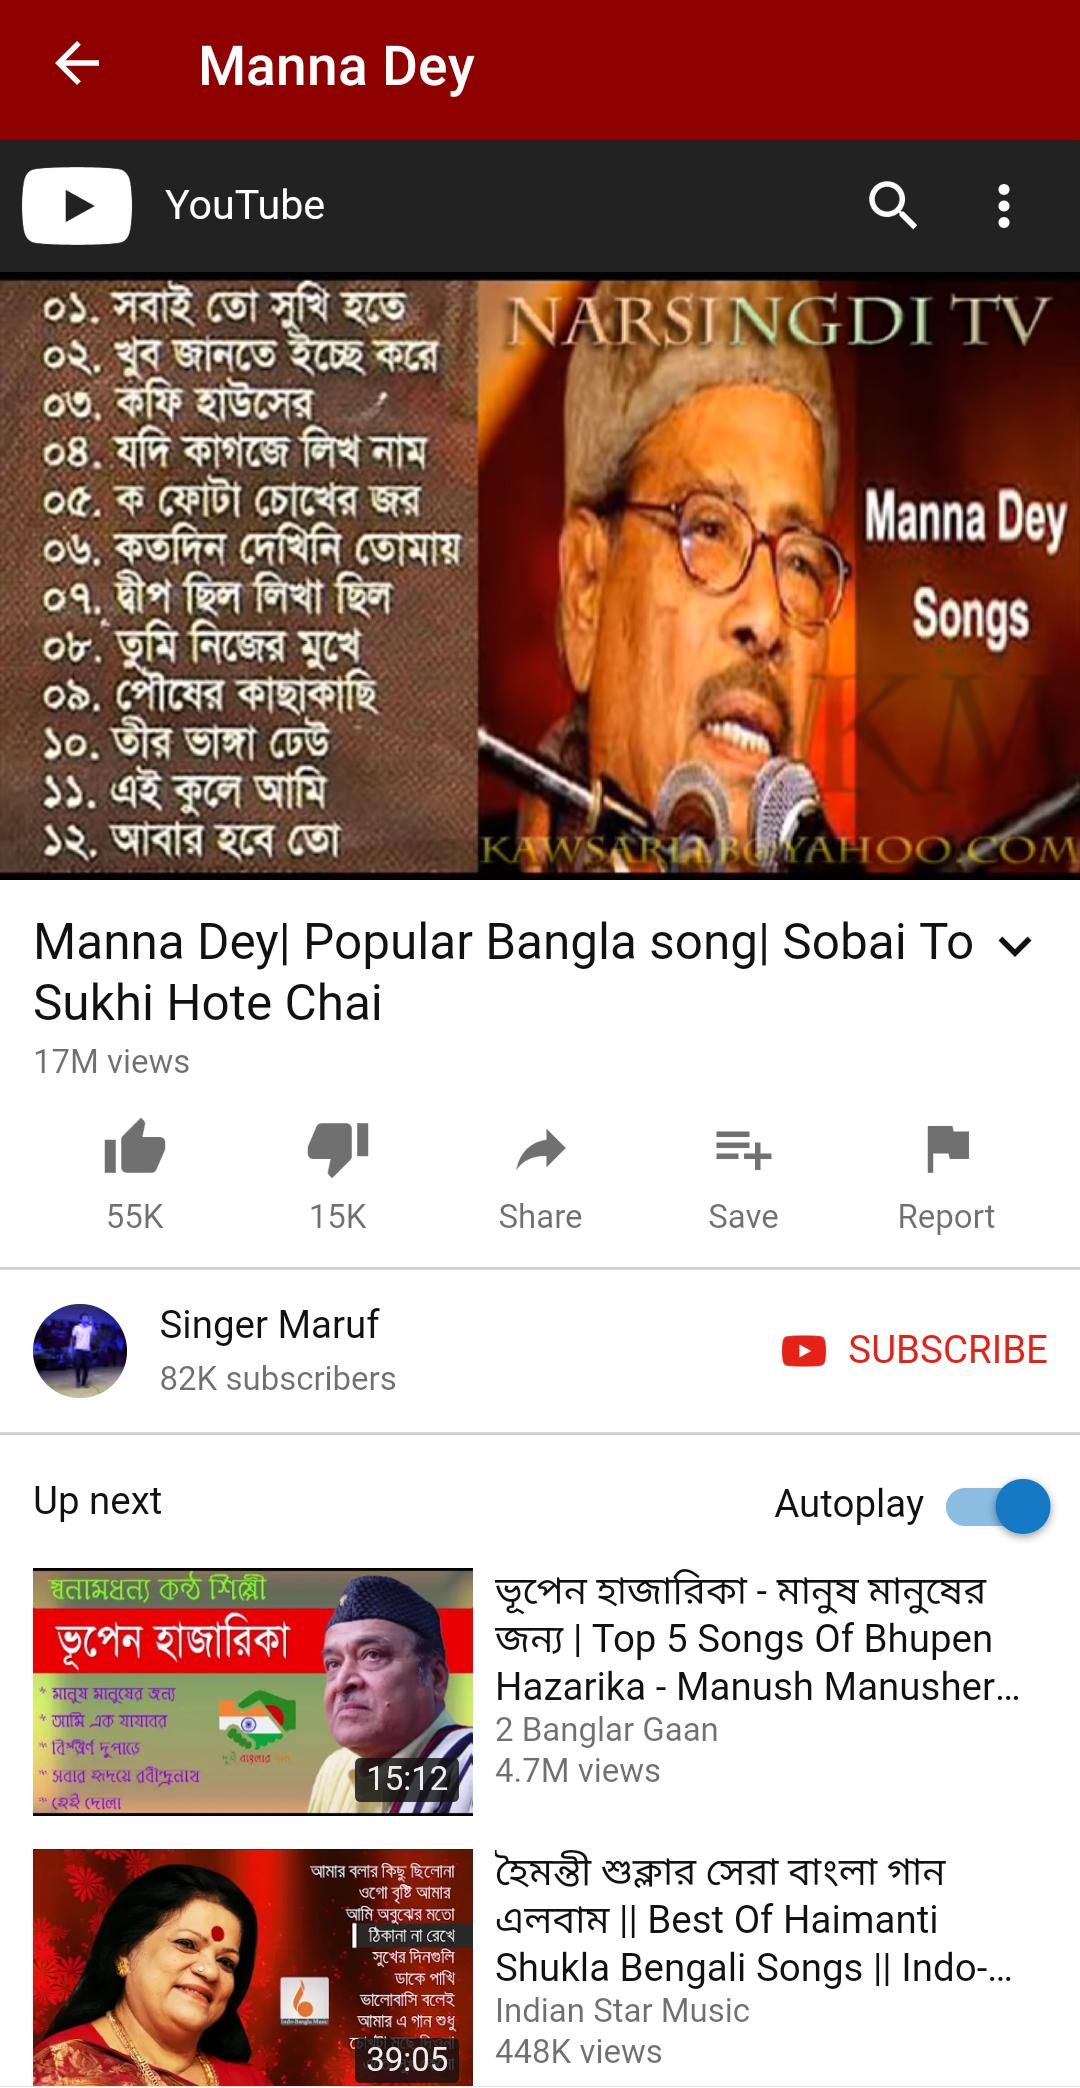 Manna Dey Songs For Android Apk Download